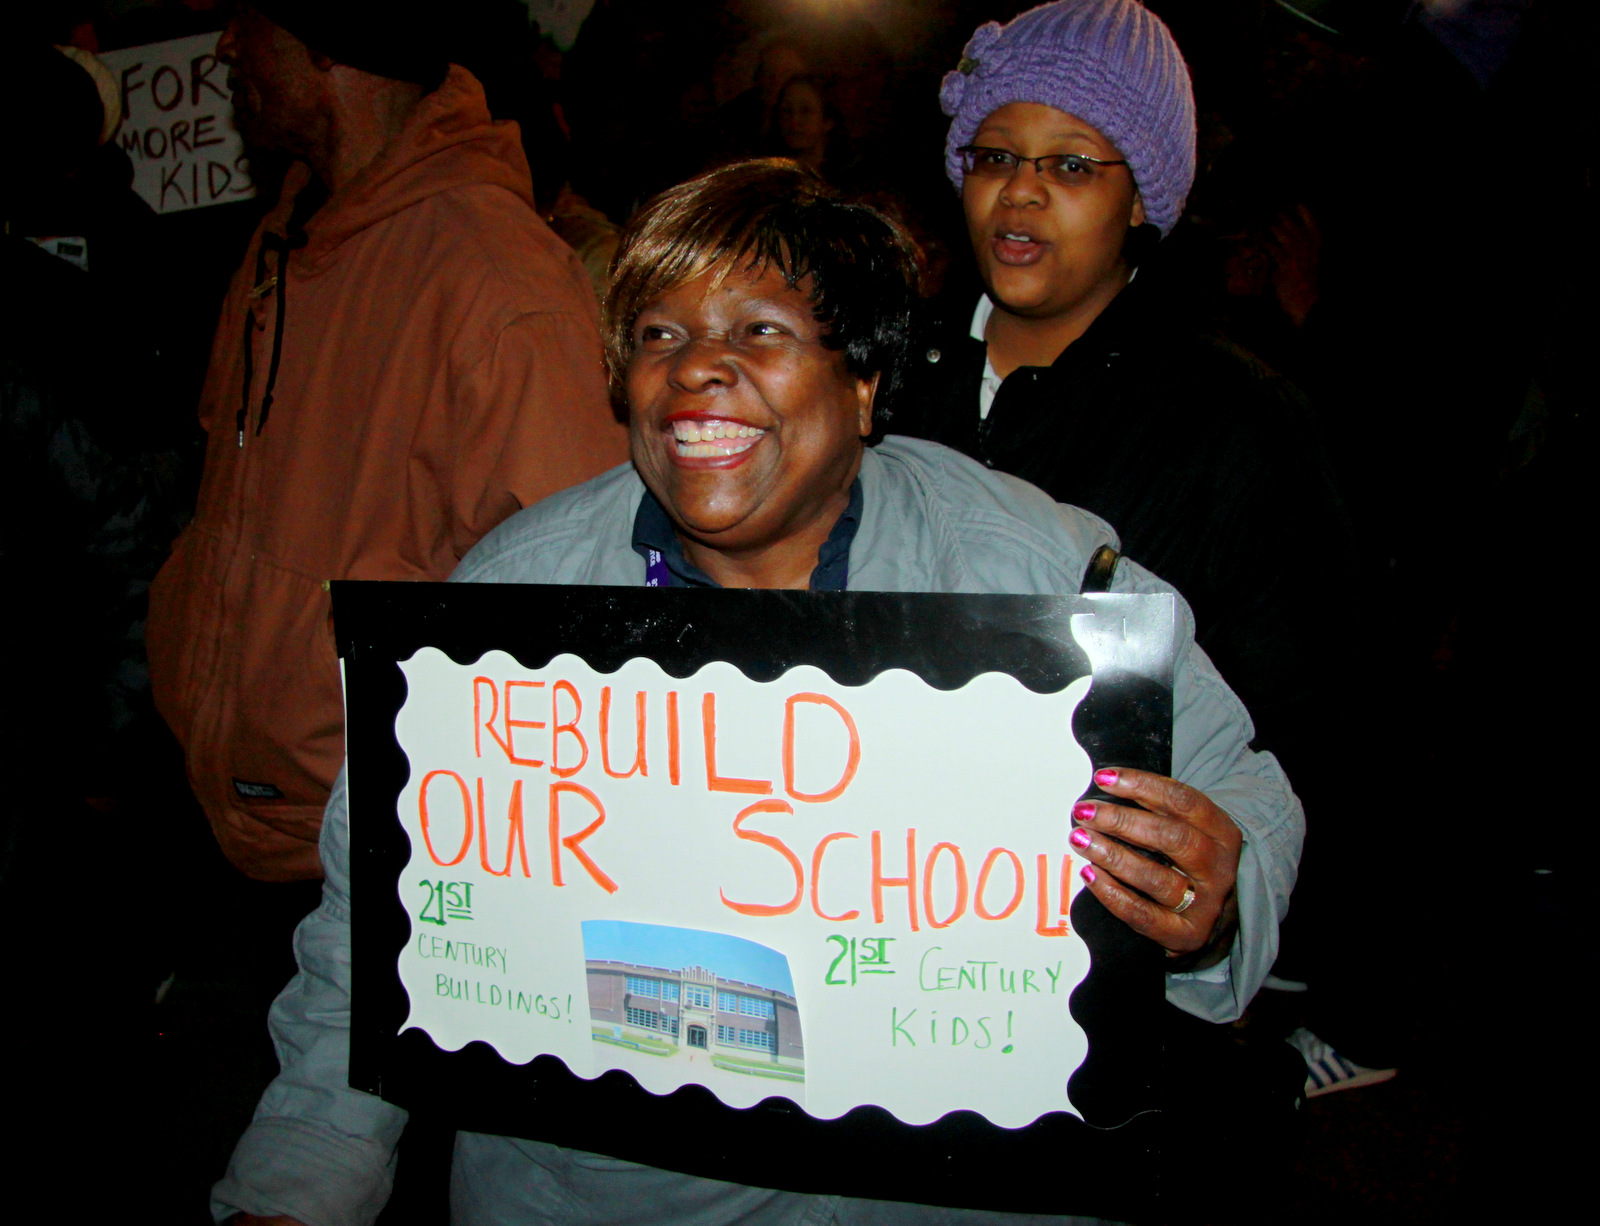 Betty Baze came to support Cherry Hill schools. (Photo by Fern Shen)